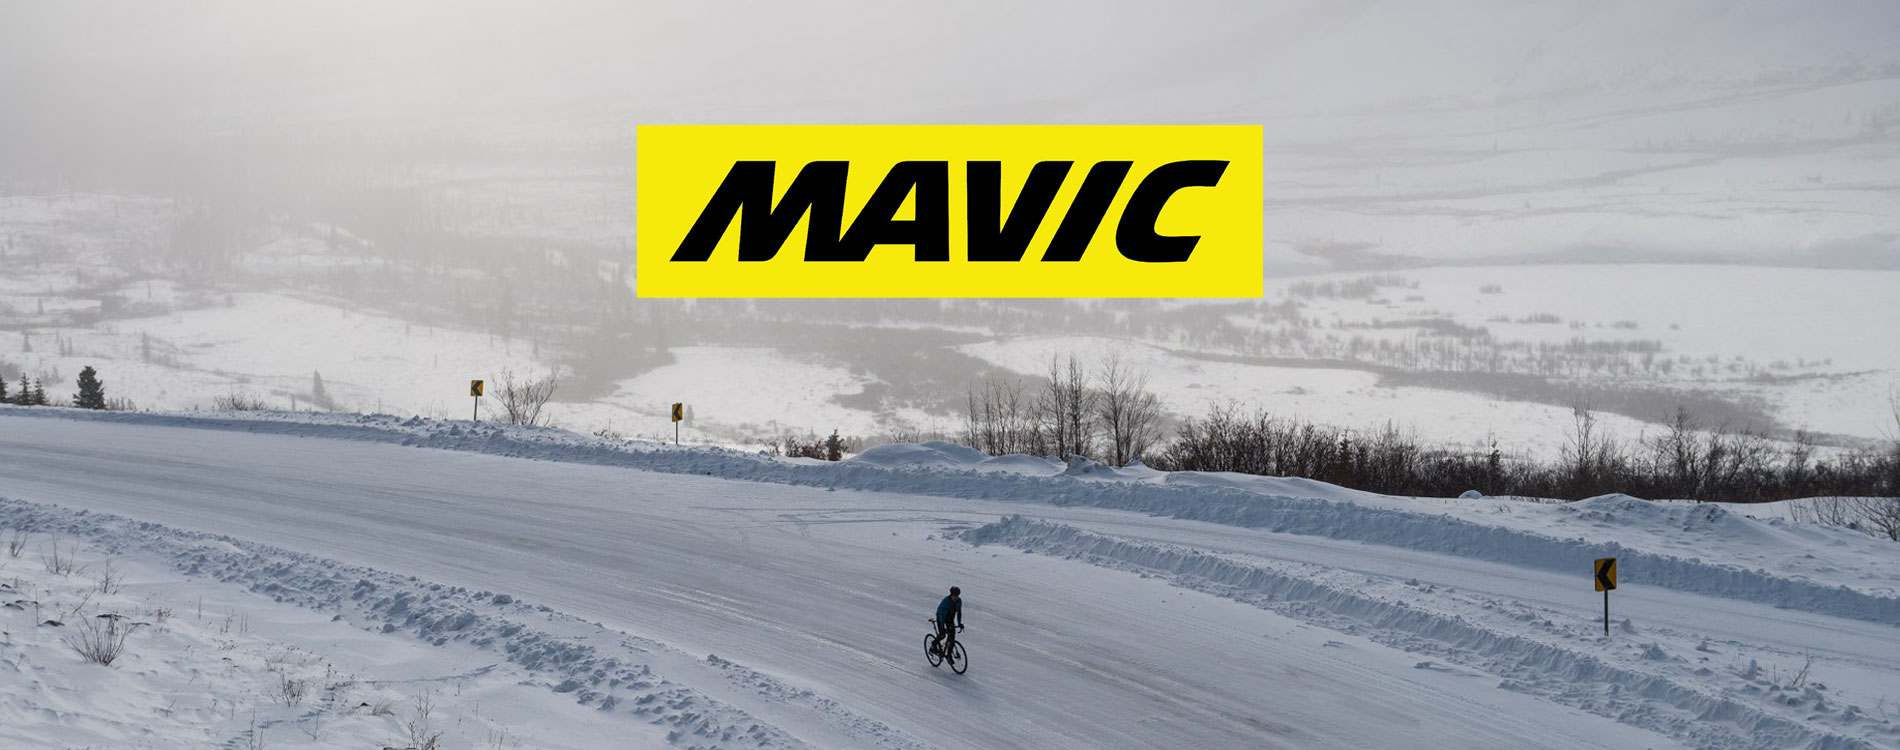 Mavic Winter Clothing 2019